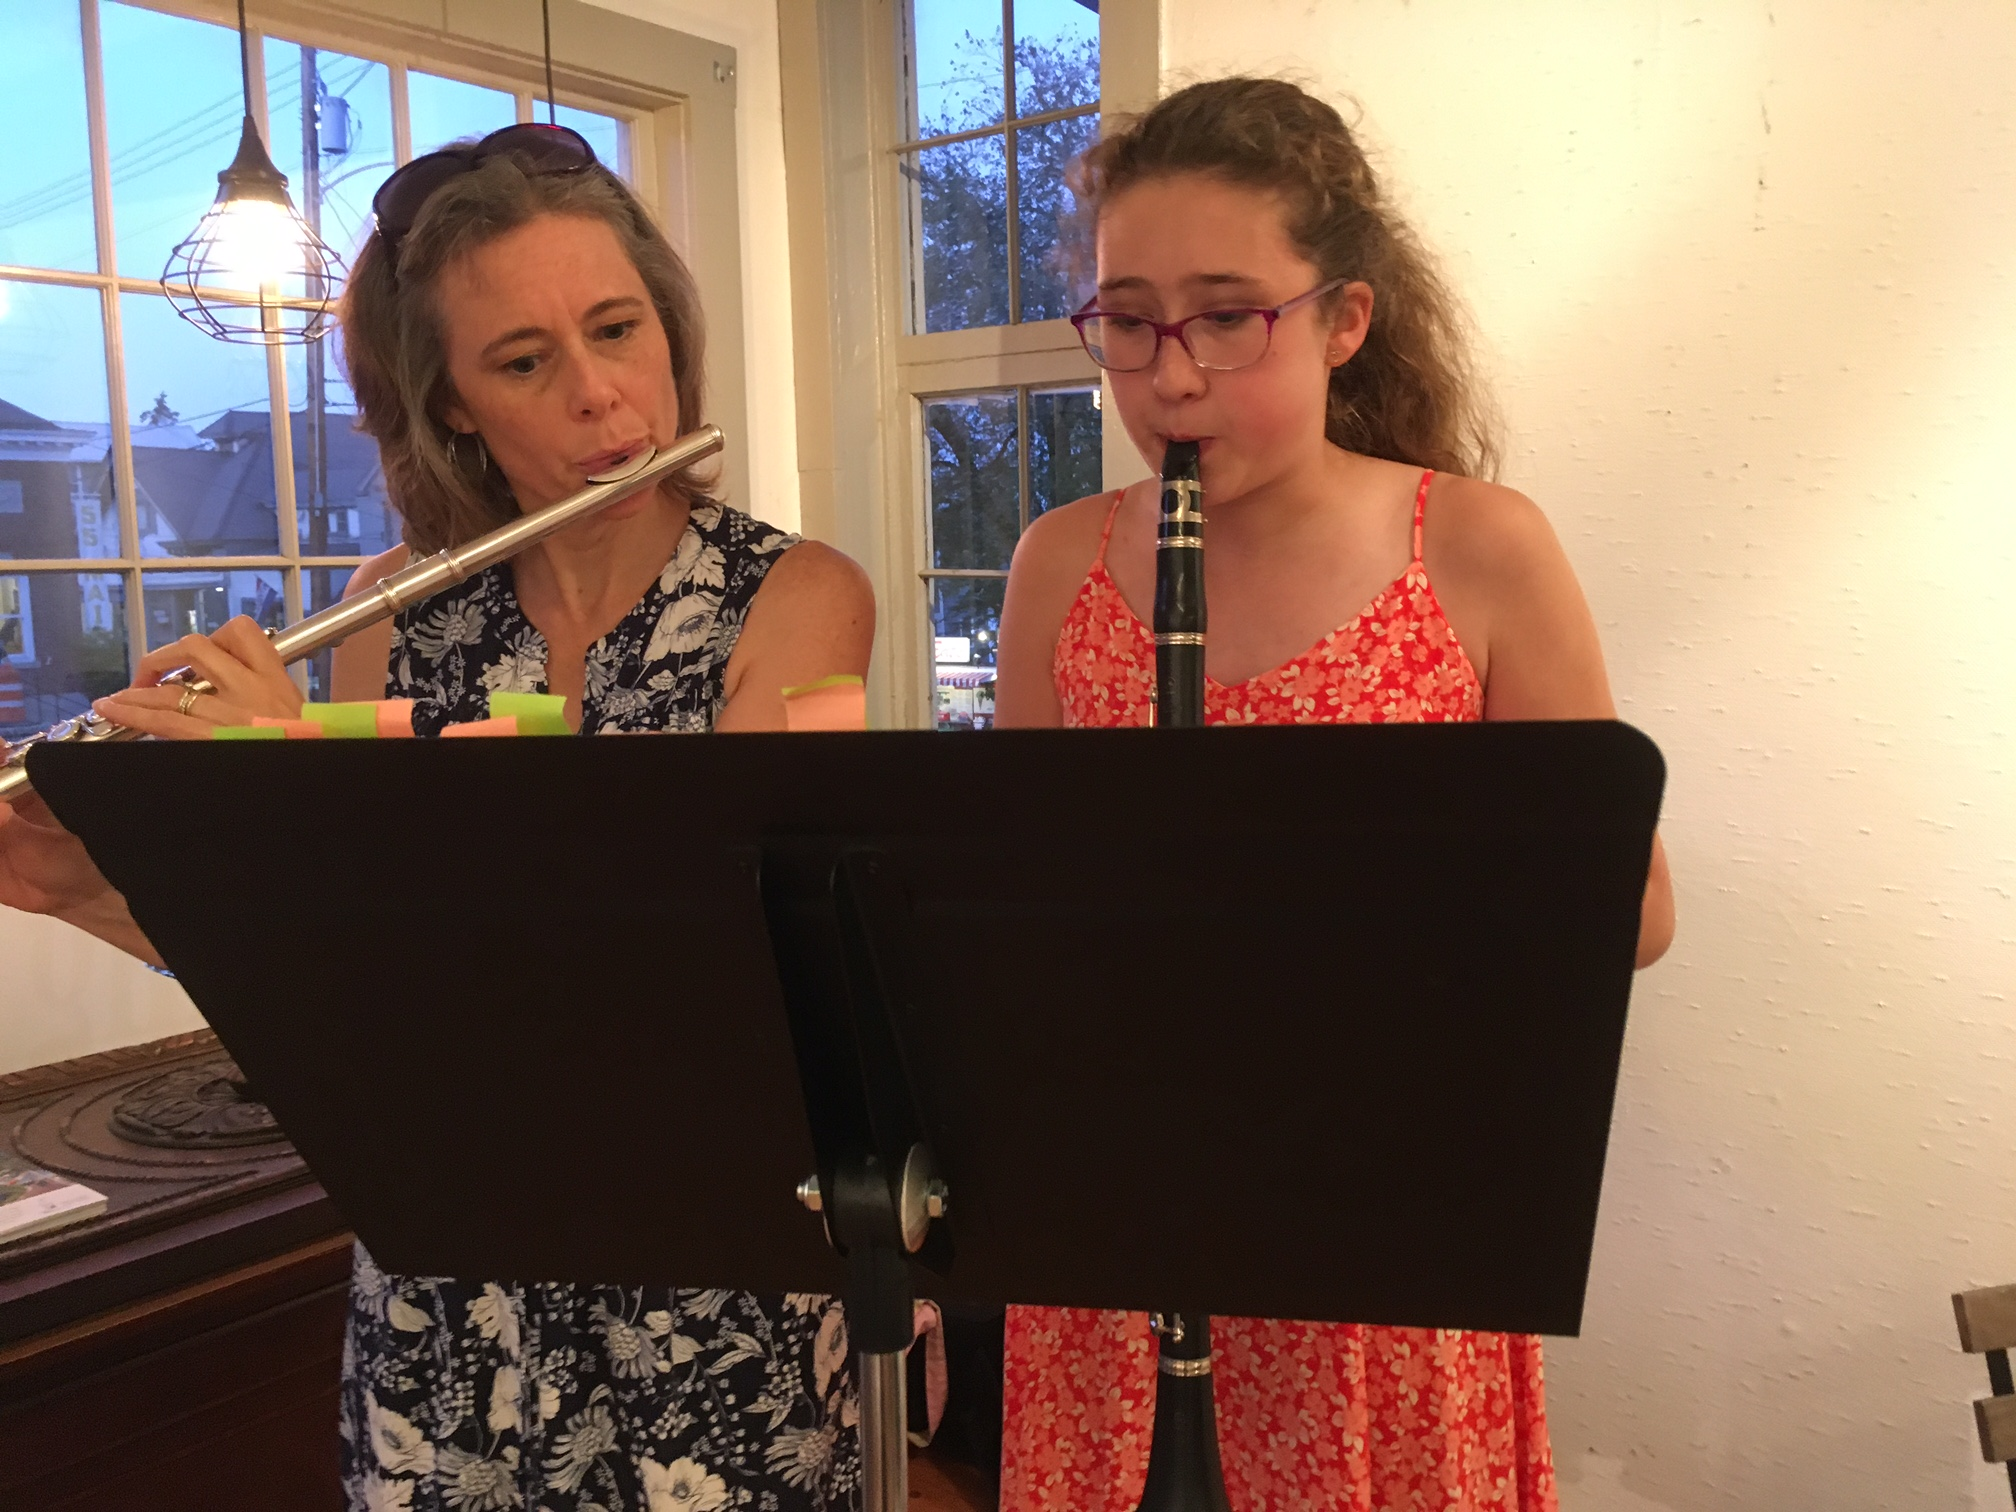 Lisa Truesdell on flute and daughter Julia on clarinet in the Weaving Project.